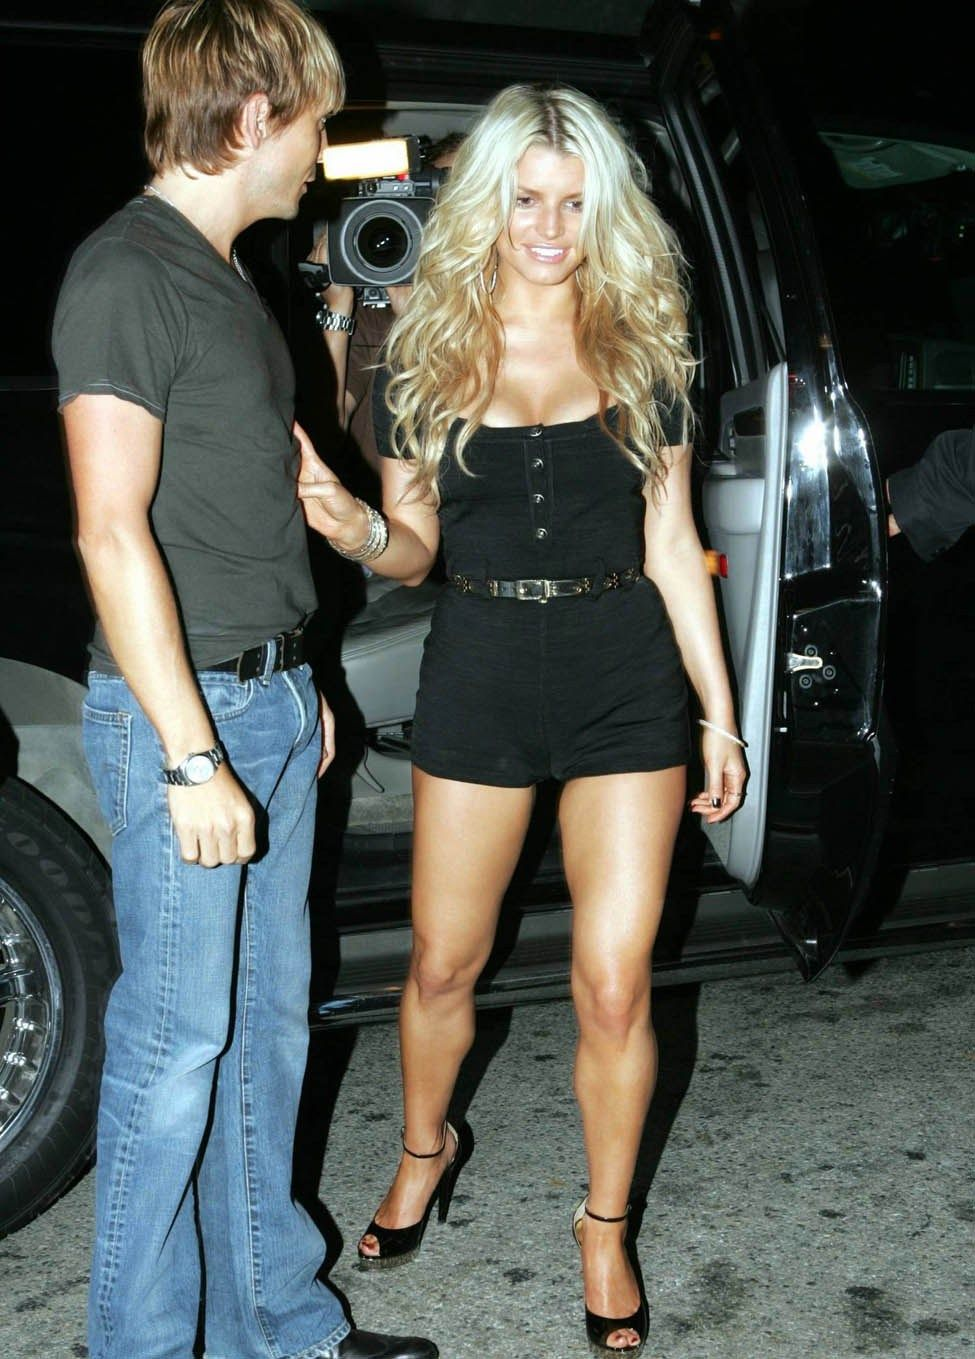 Jessica Simpson hot | JESSICA SIMPSON - SHORT SEXY OUTFIT - 2 ...